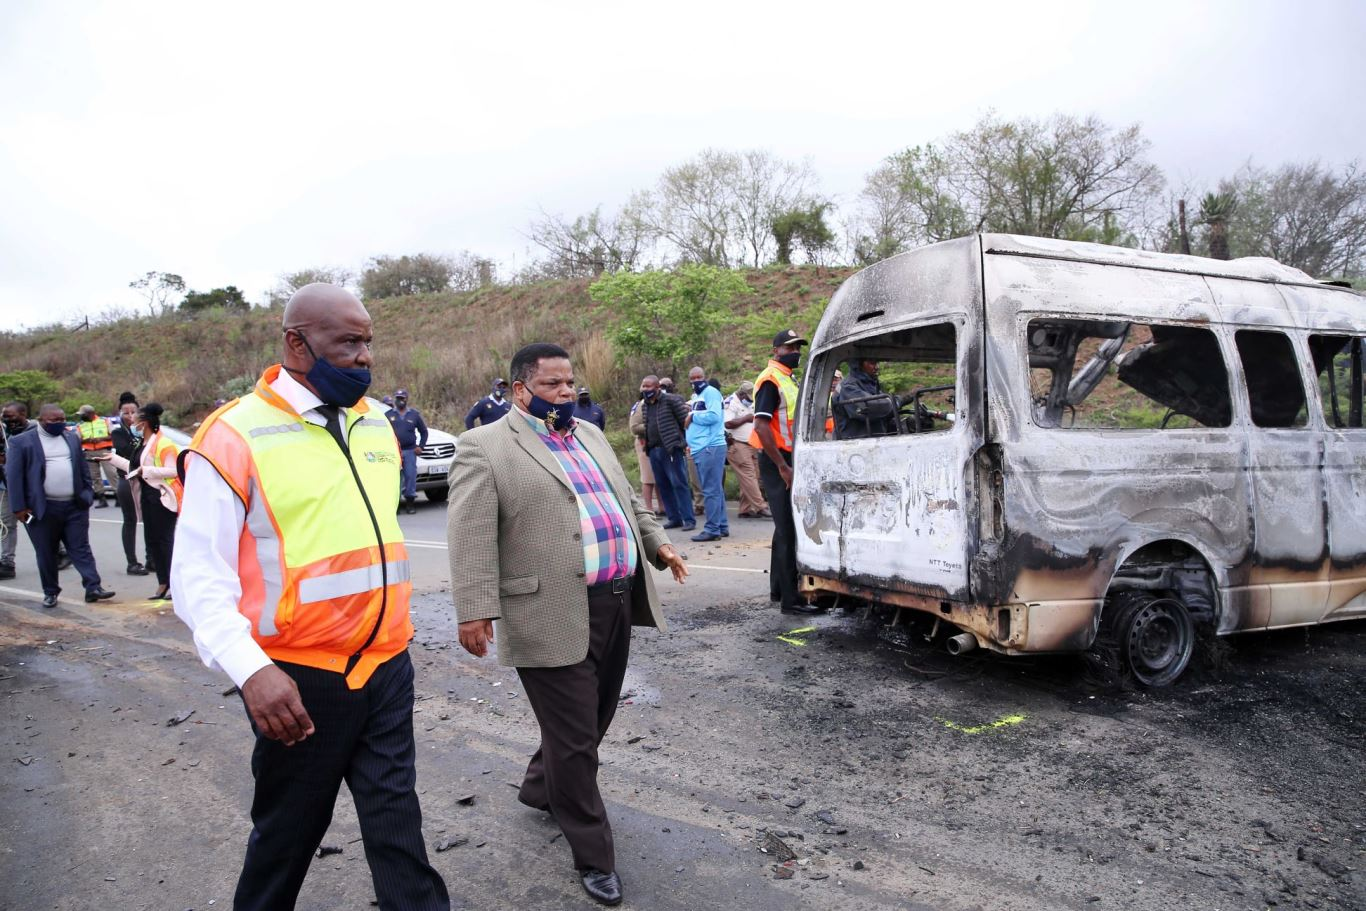 KZN MEC Ntuli pleads for extreme caution after horrific crash in KZN killed 16 people